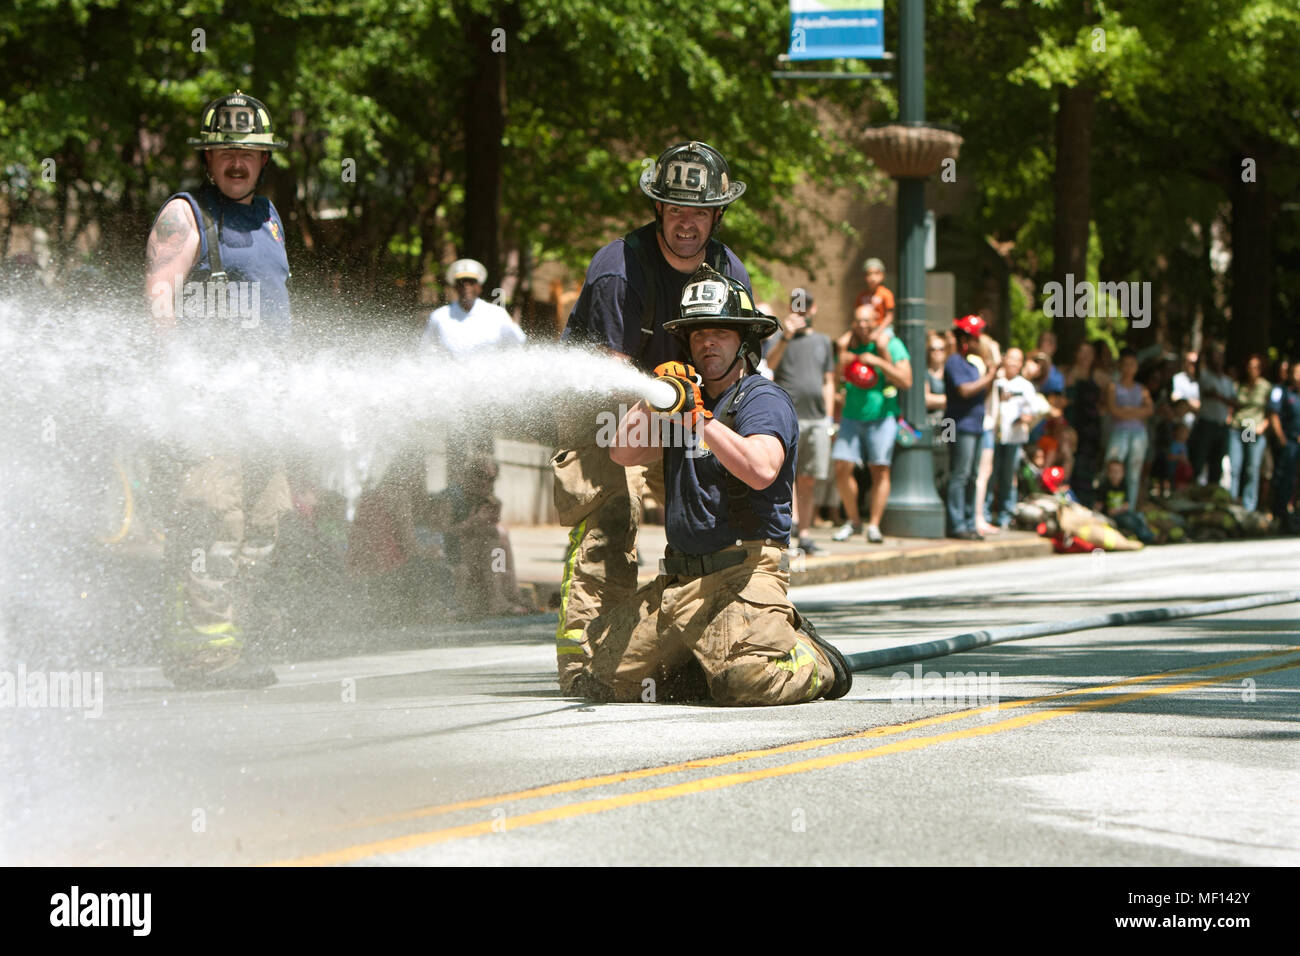 Firemen aim a fire hose at a target in a fireman muster competition between local fire departments, on May 2, 2015 in Atlanta, GA. - Stock Image